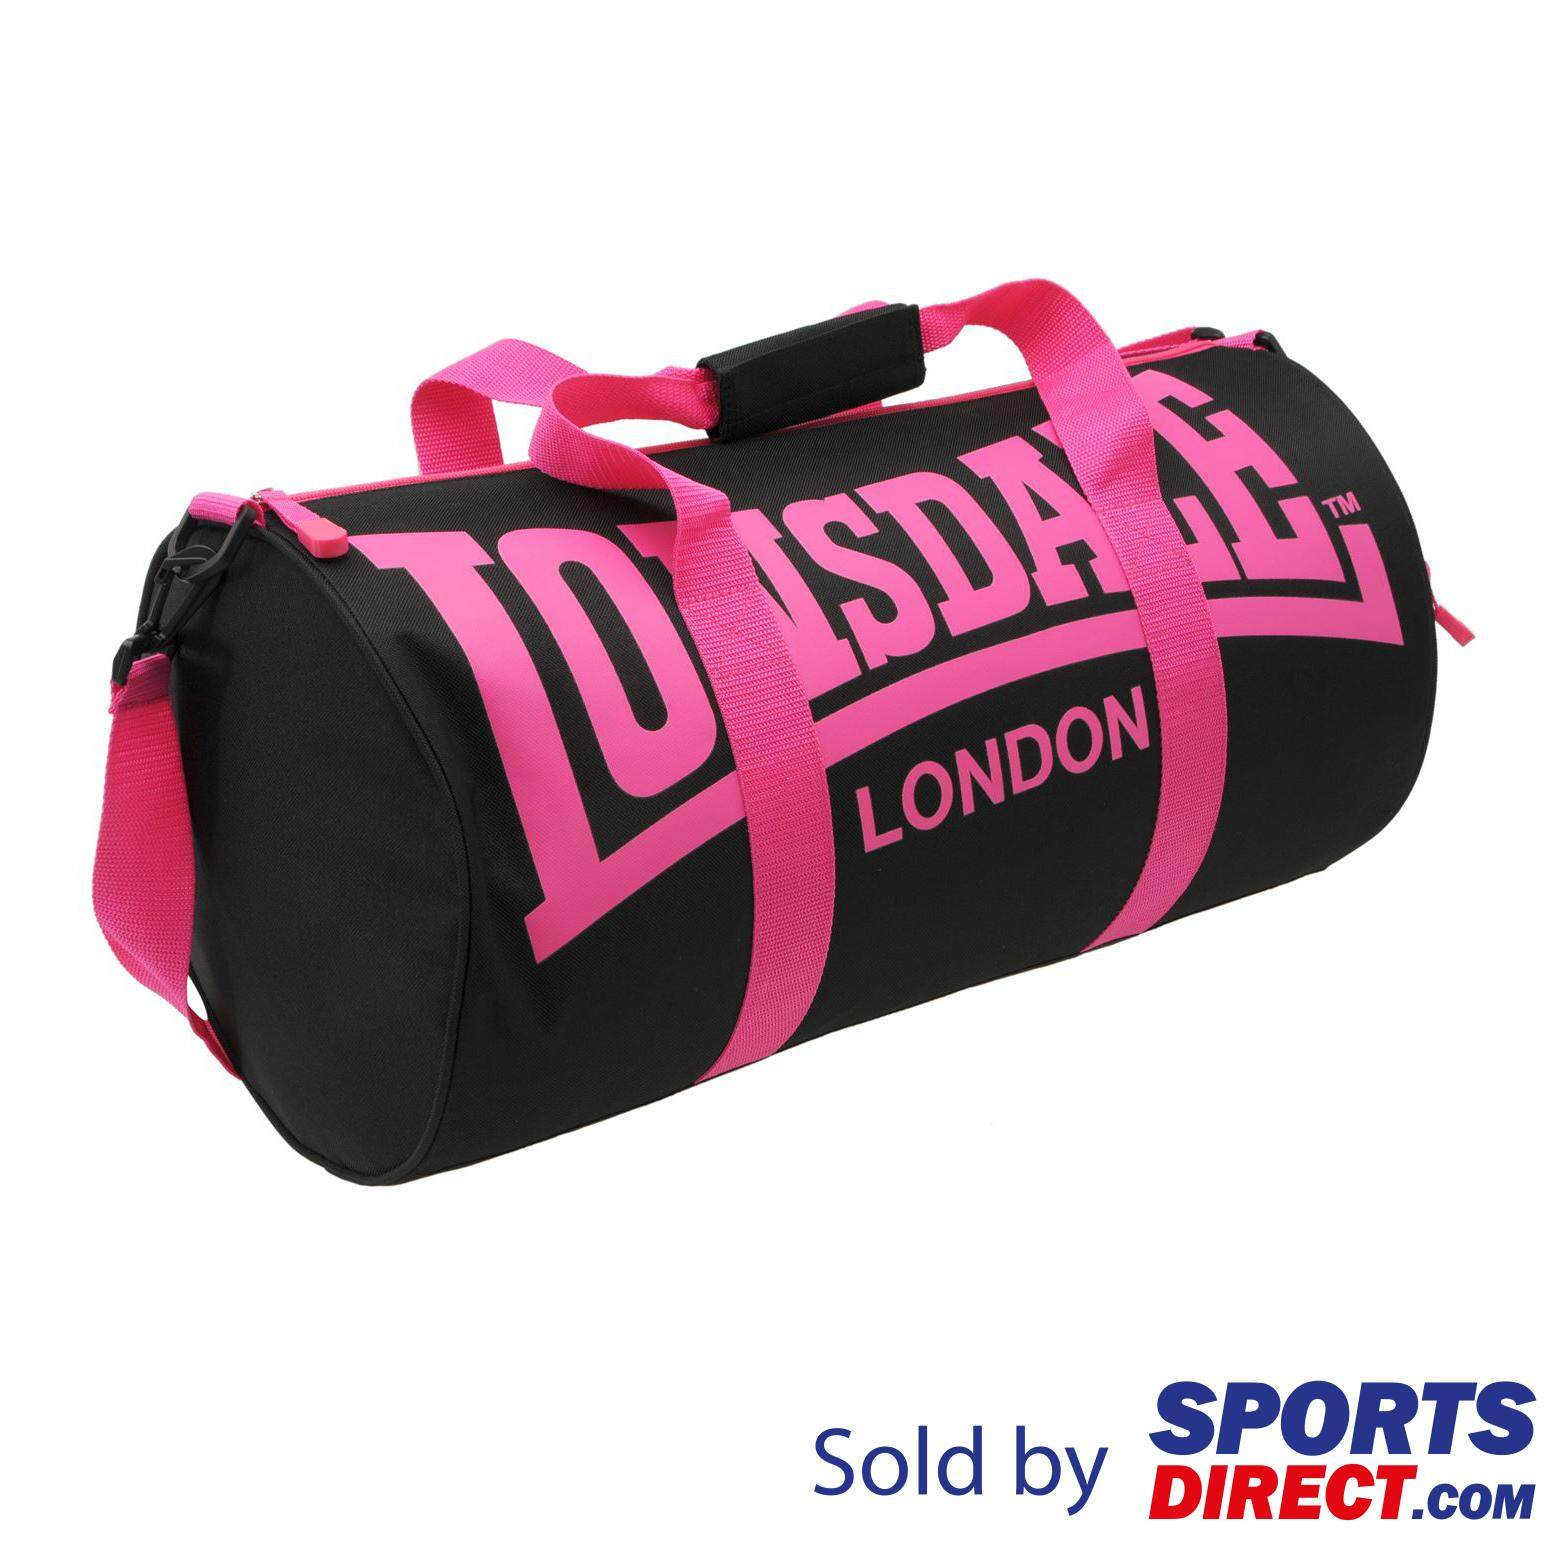 200c3da132 Women s Sports Bags - Buy Women s Sports Bags at Best Price in ...